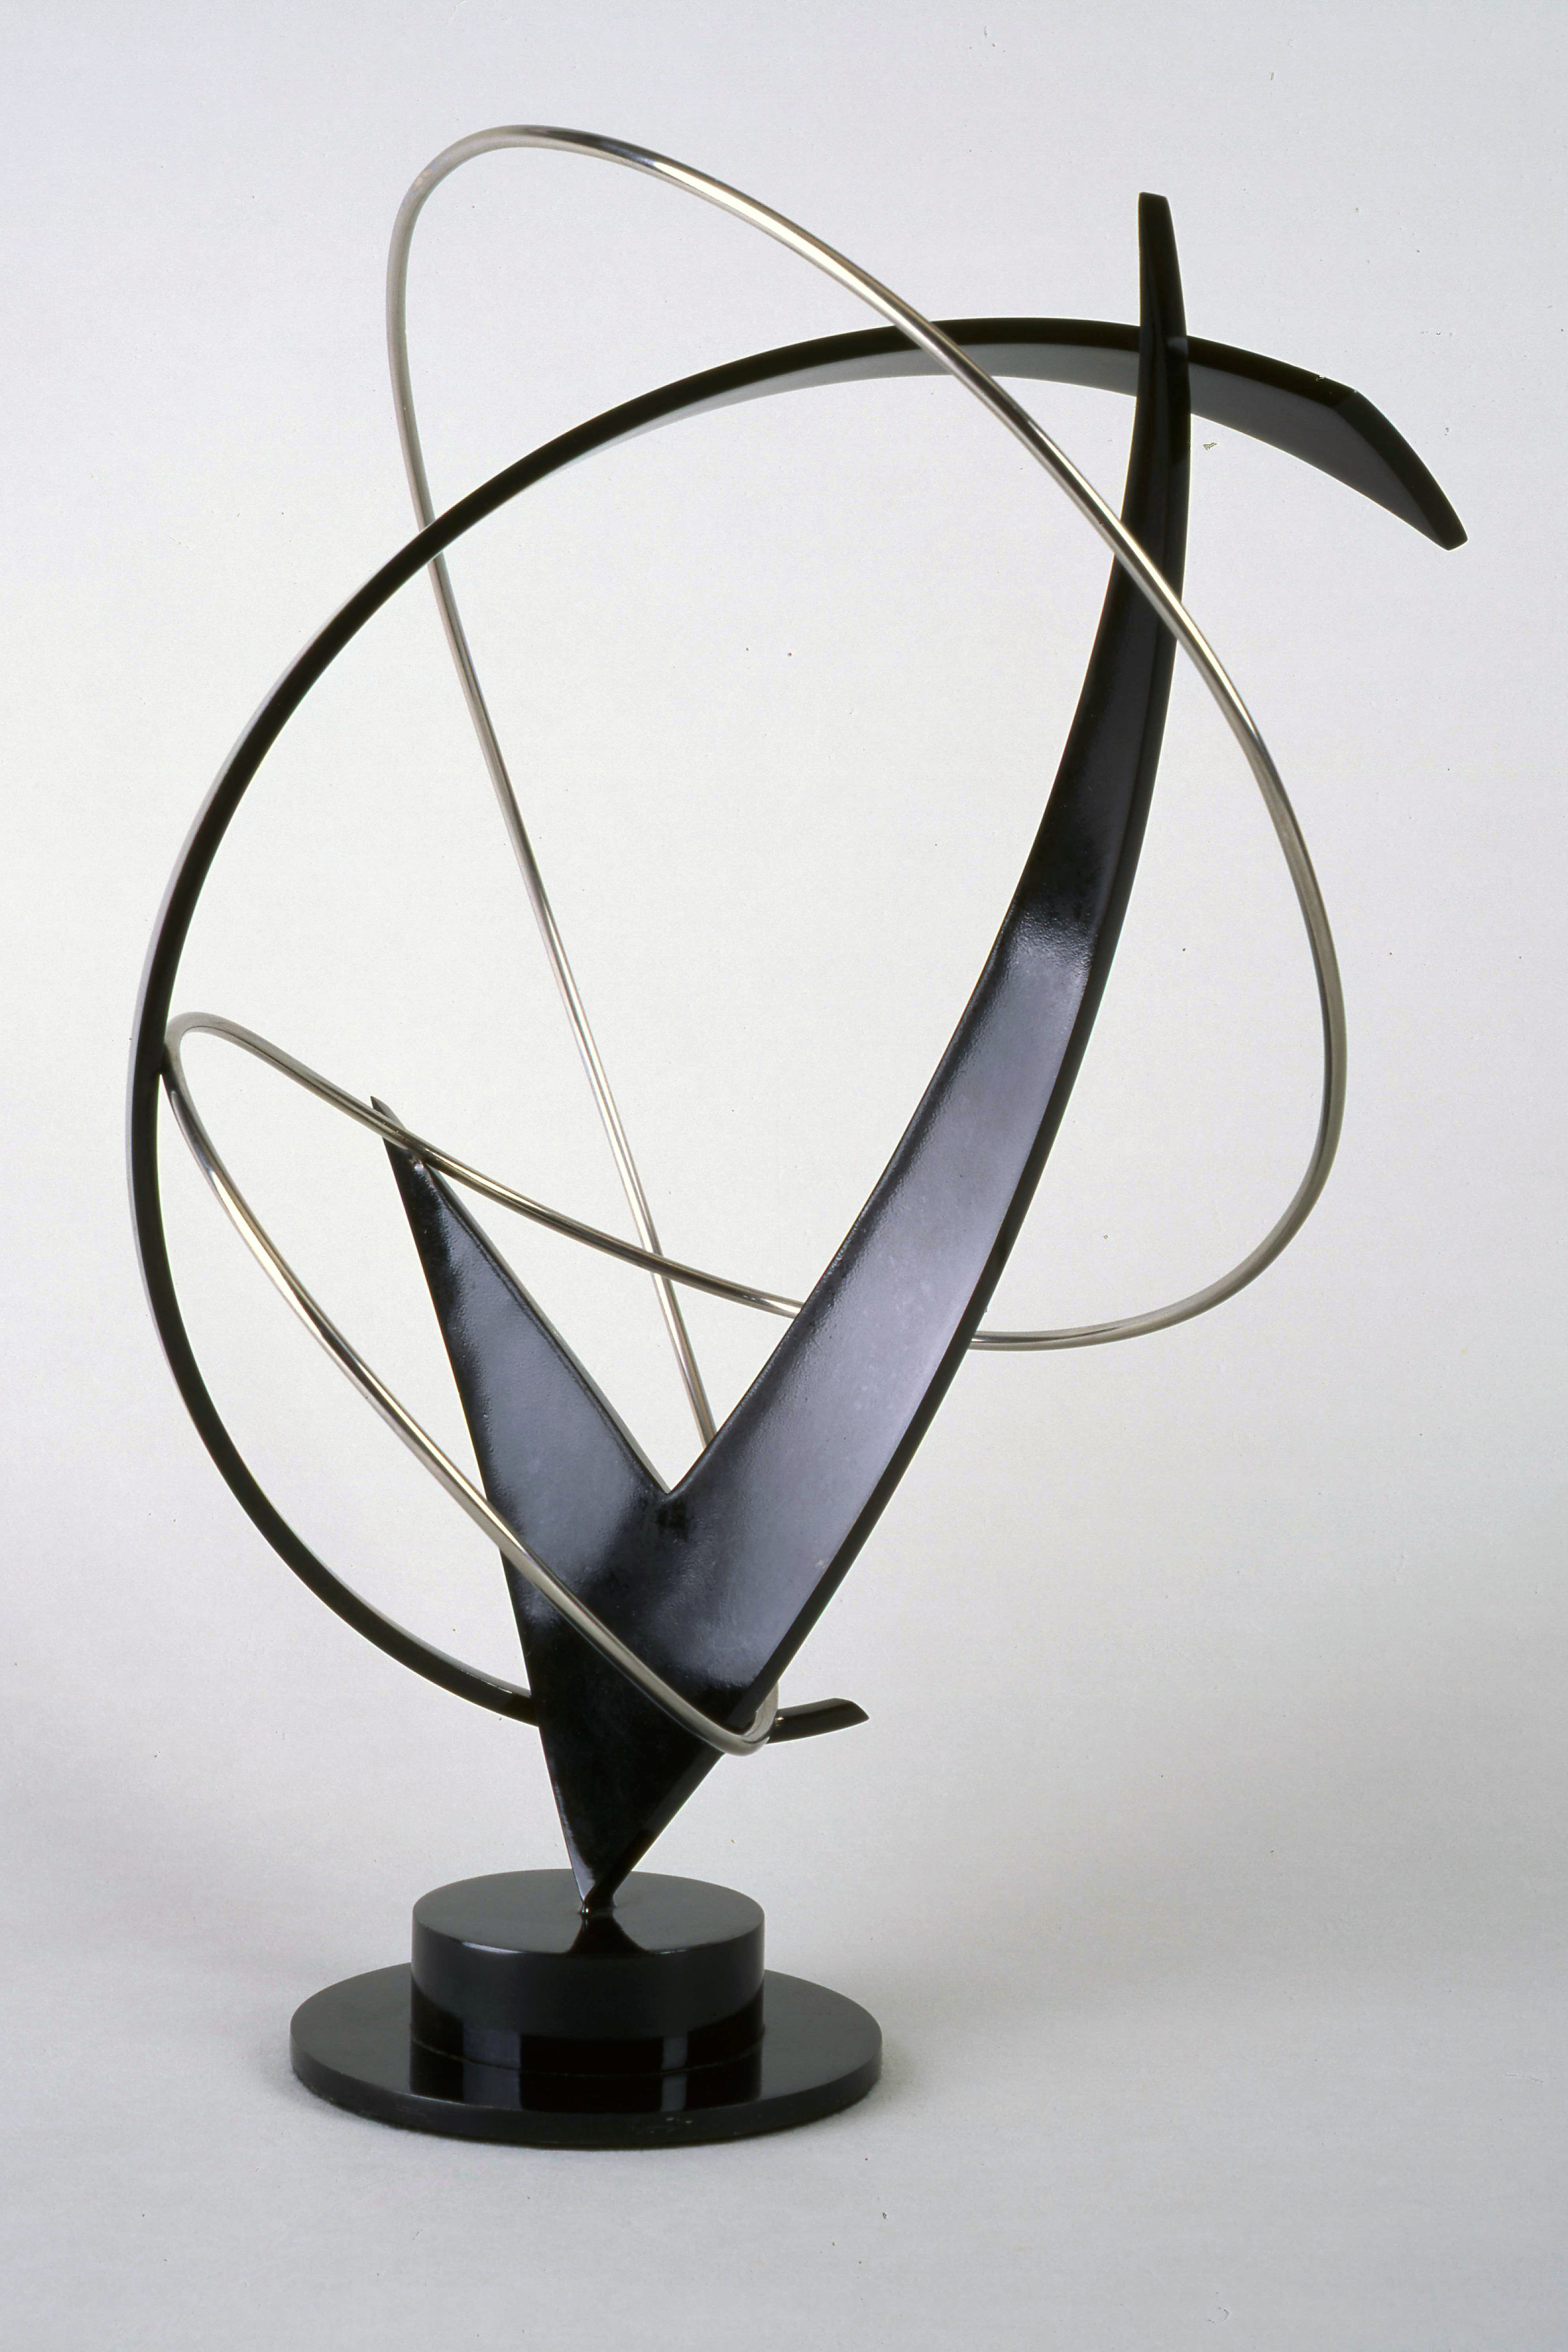 Entropy Series #27, steel and stainless steel